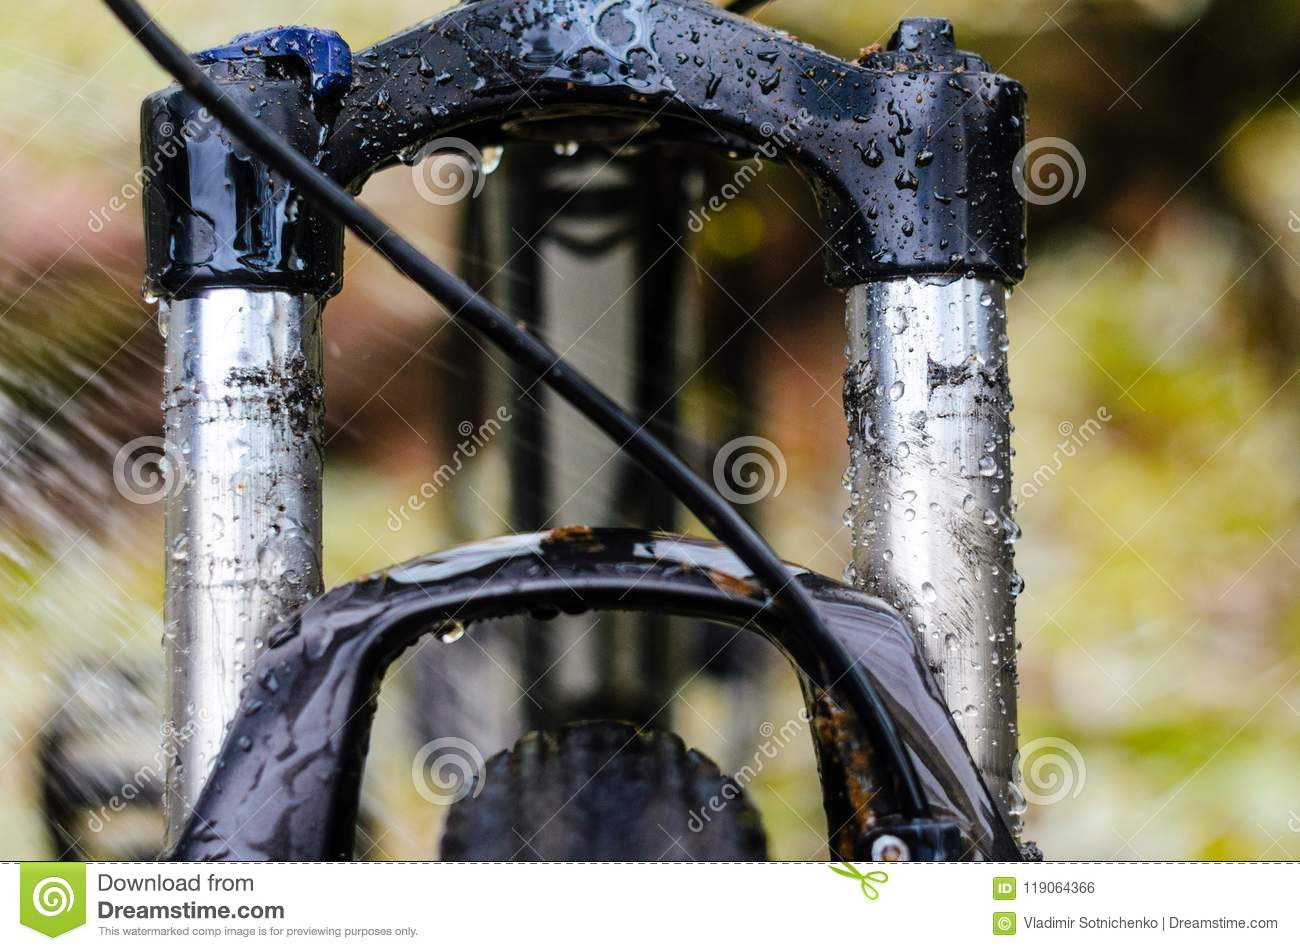 adb8b7a6859 Dirty Bicycle Suspension Fork Stock Photo - Image of front, leisure ...